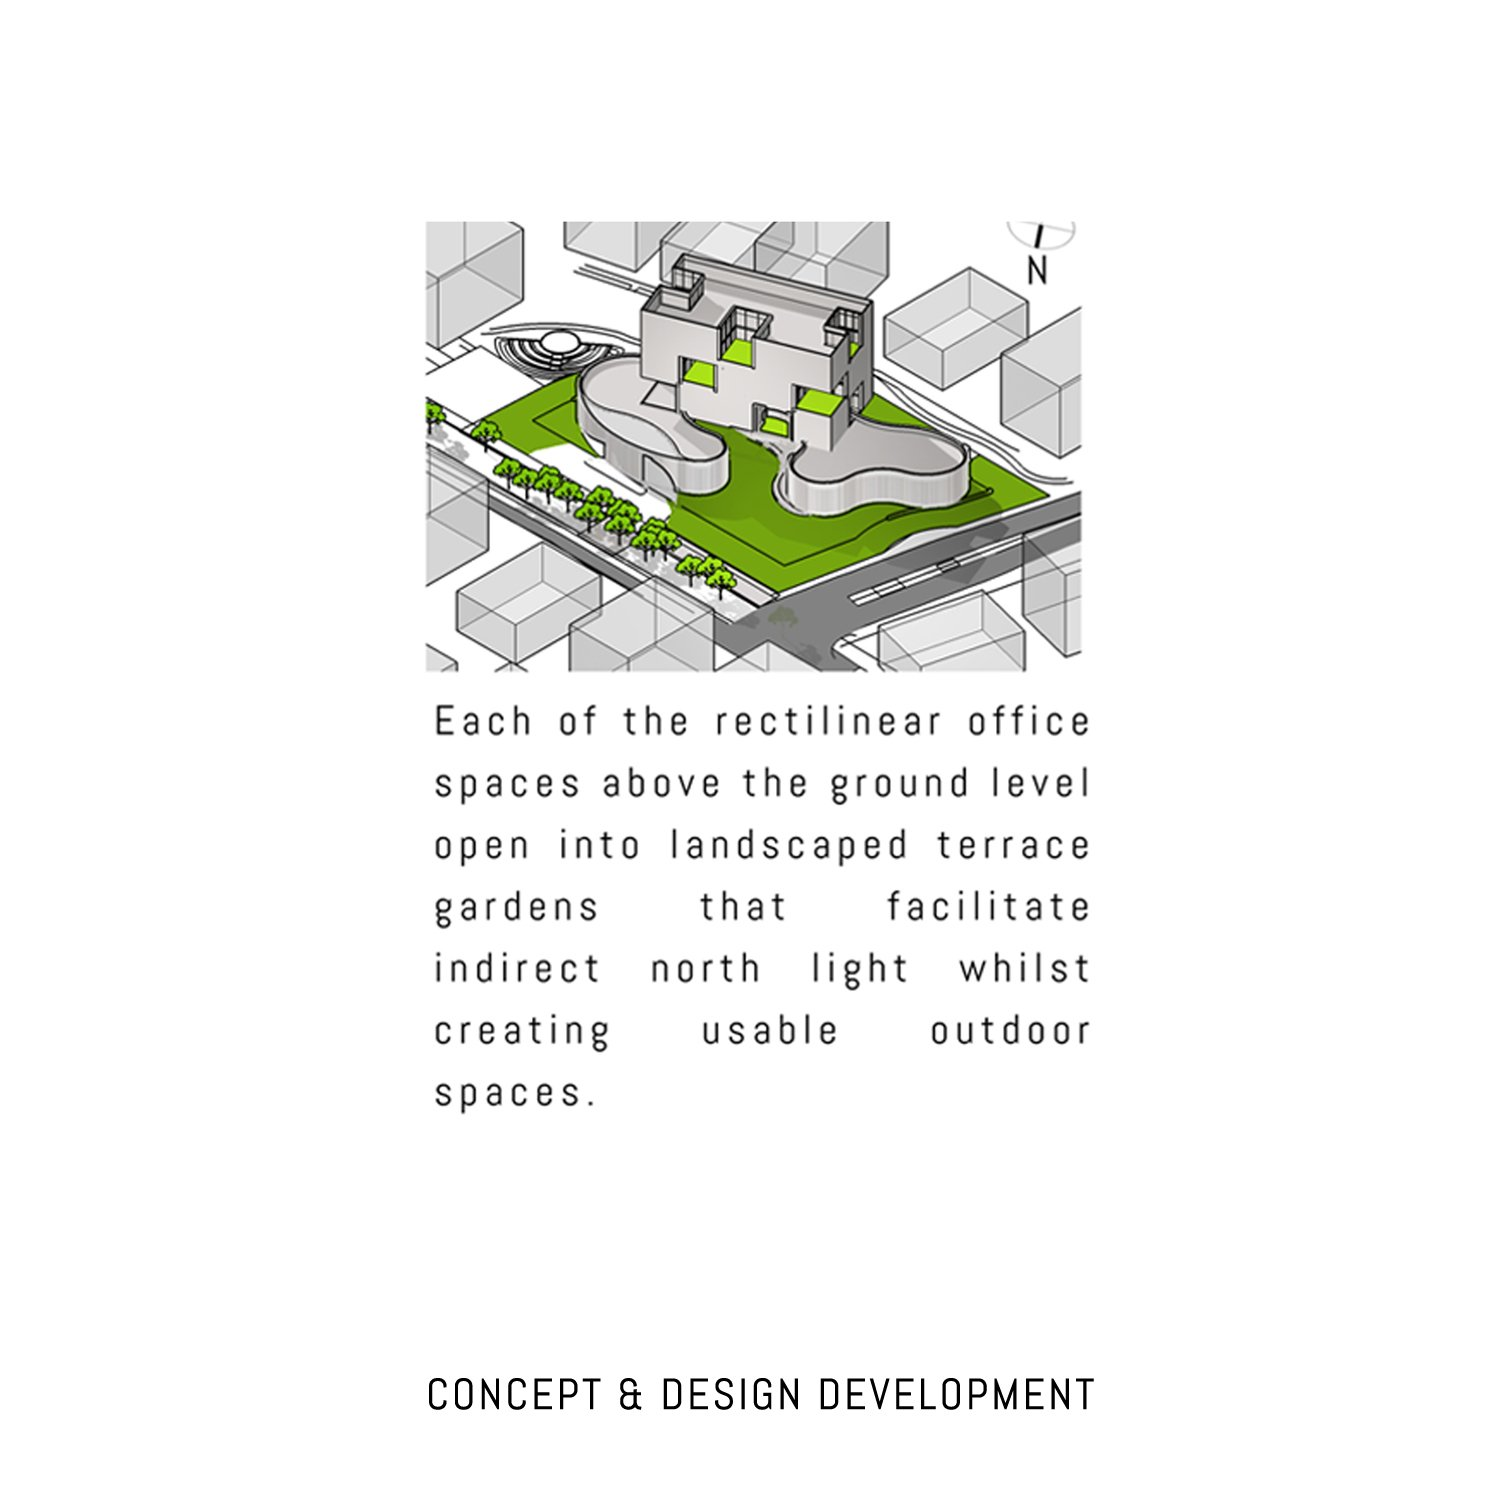 CONCEPT & DESIGN DEVELOPMENT sanjay puri architects}